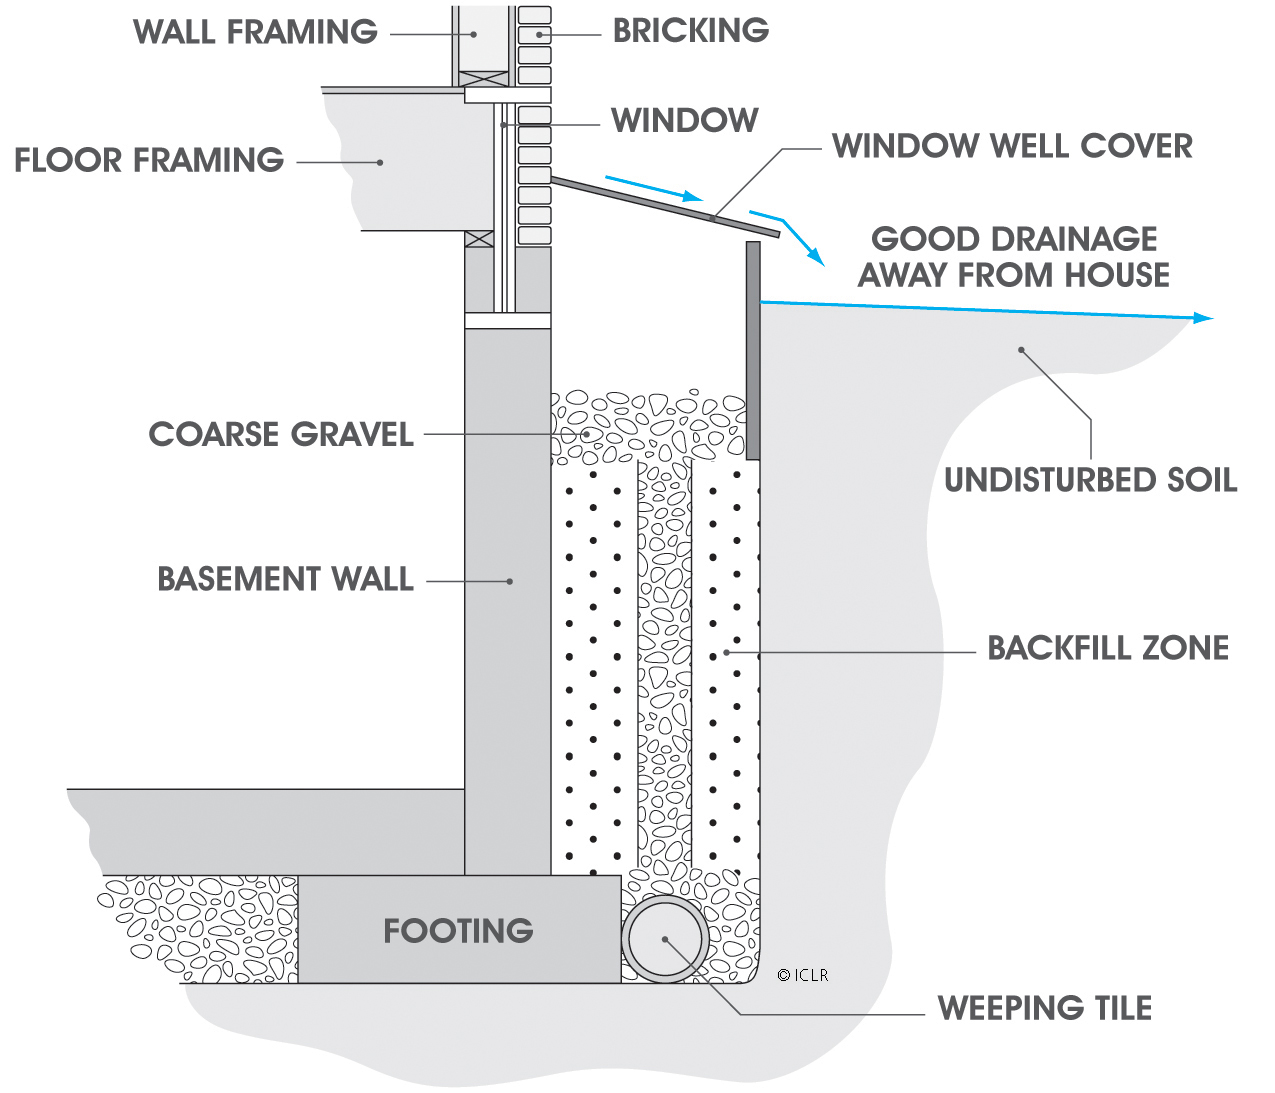 window well schematic showing water diversion